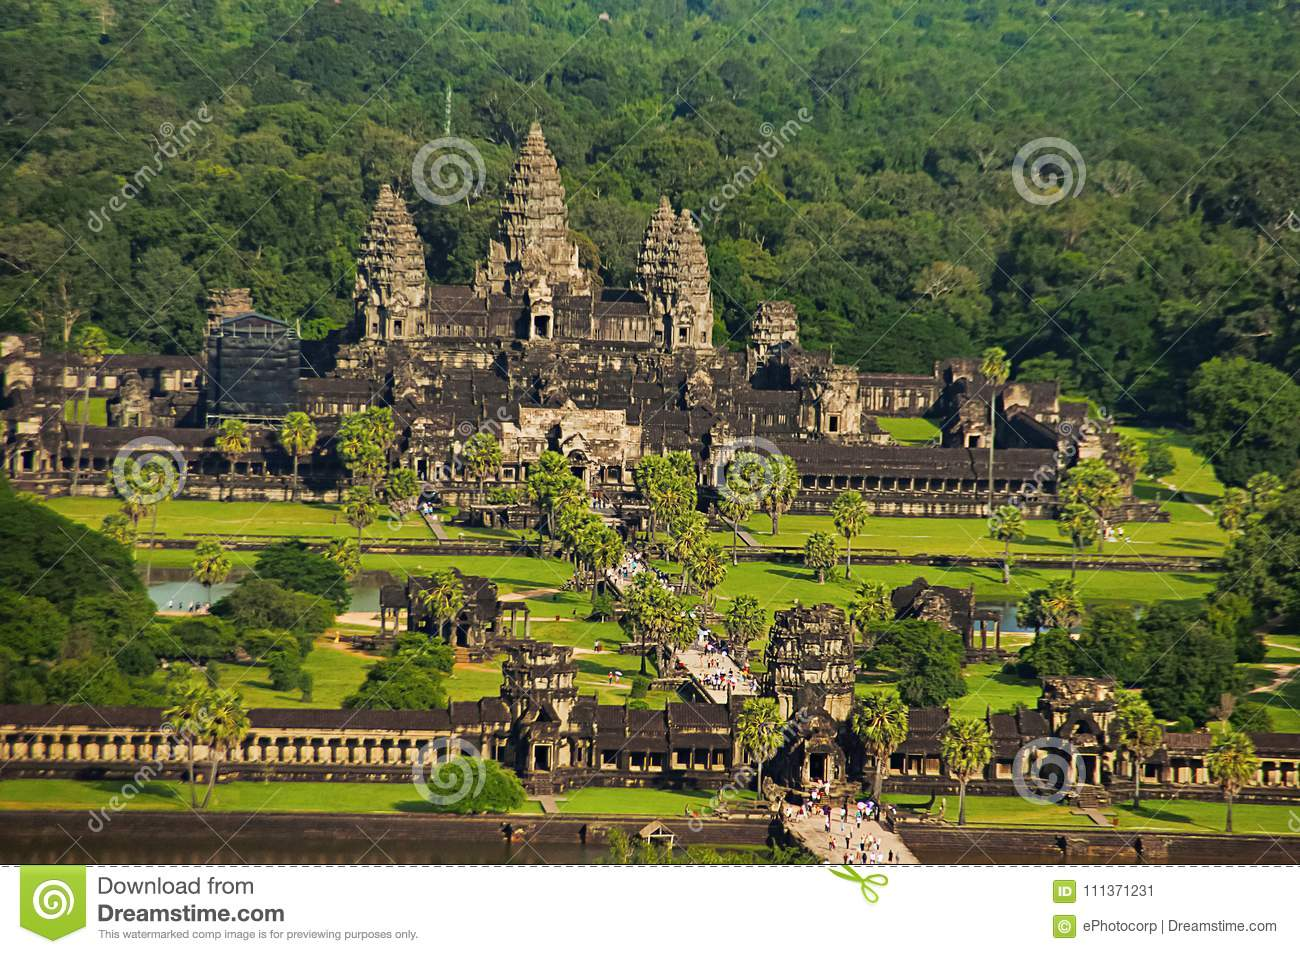 Angkor Wat temple complex, Aerial view. Siem Reap, Cambodia. Largest religious monument in the world 162.6 hectares